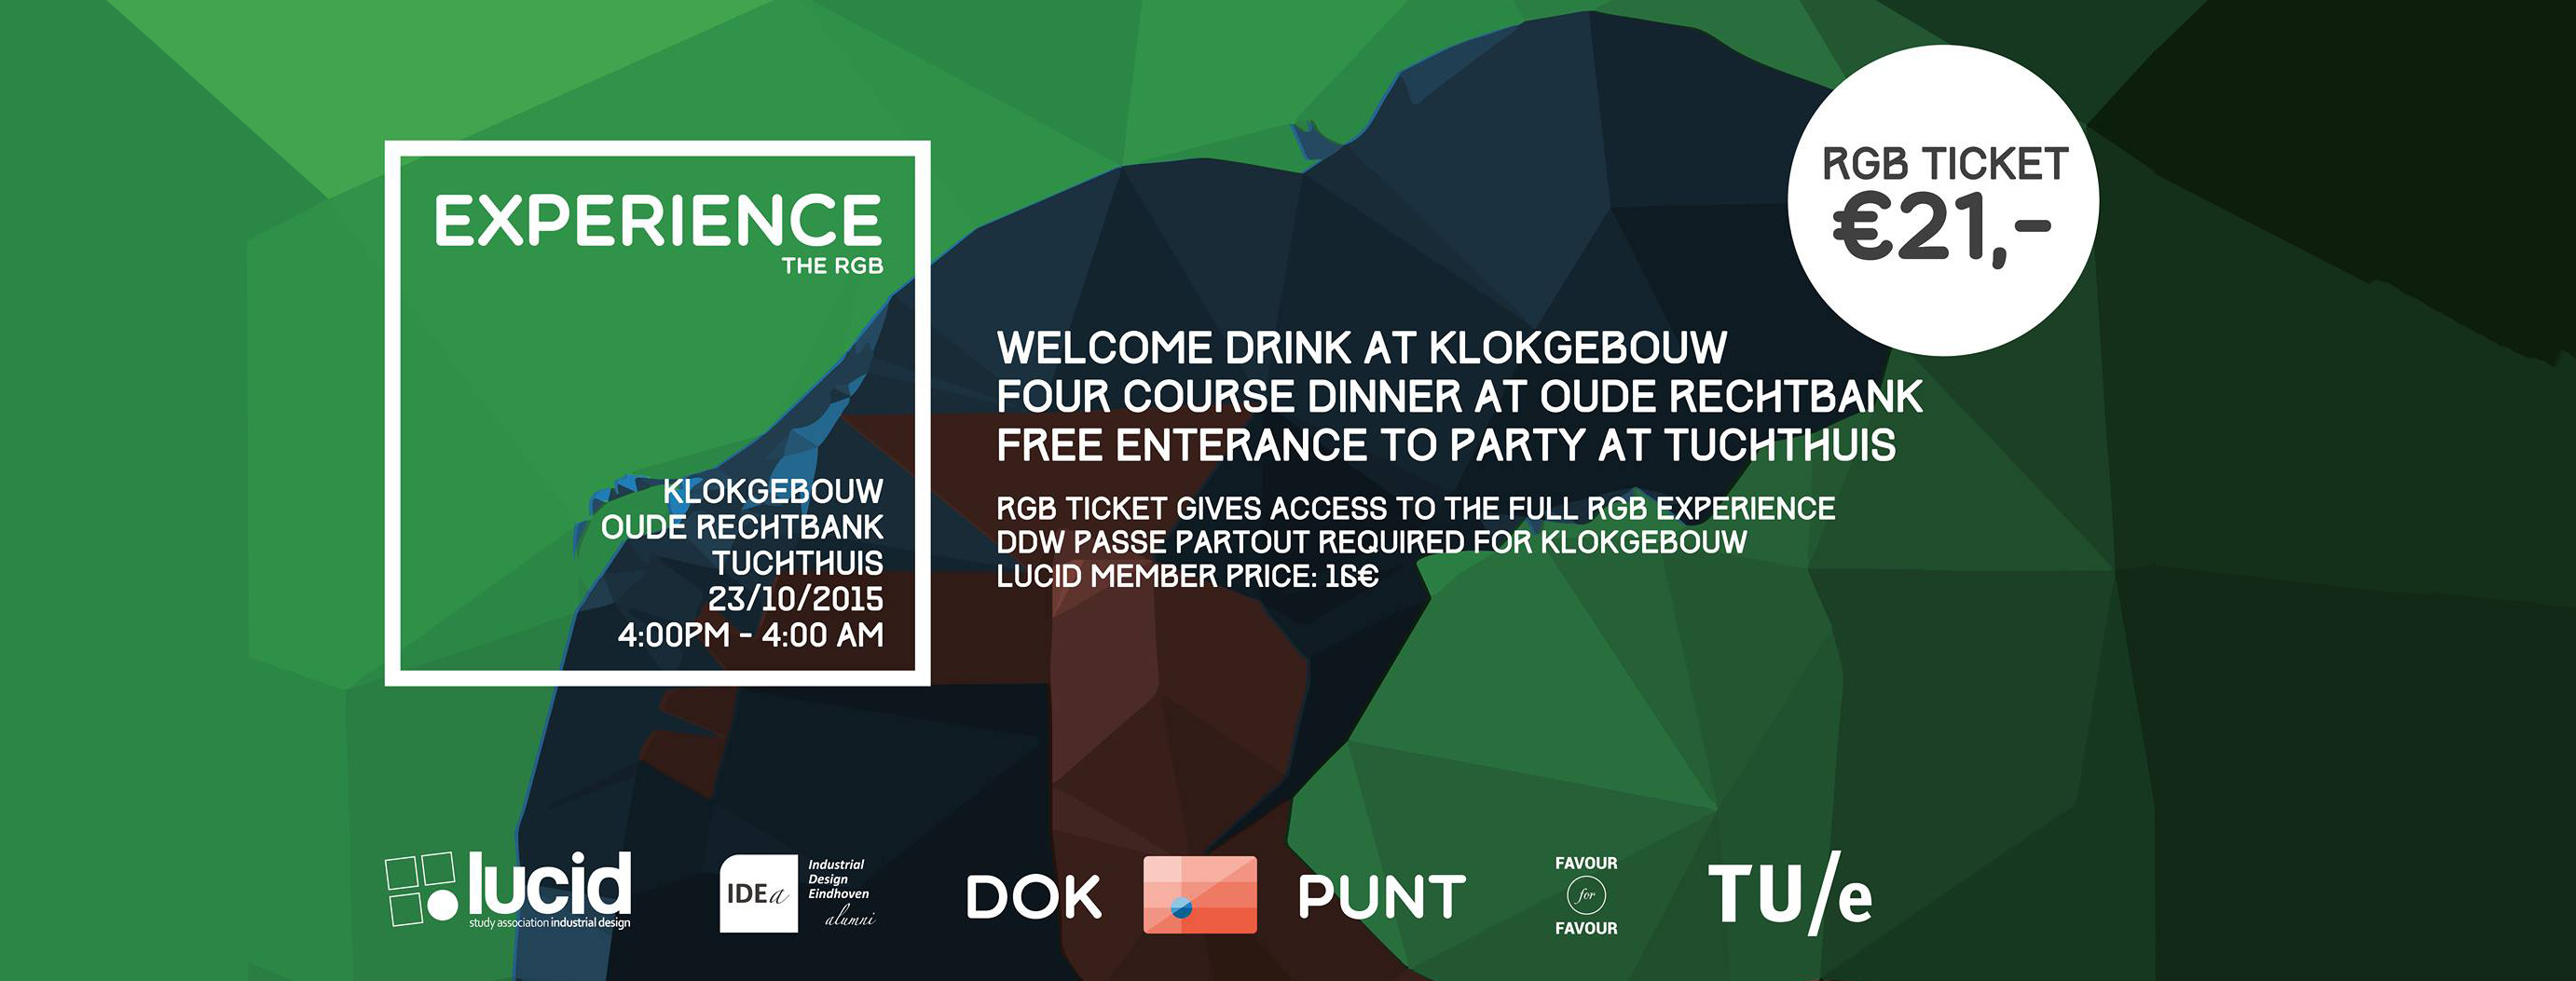 "DDW Activity: ""Experience the RGB"" on the 23rd of October"